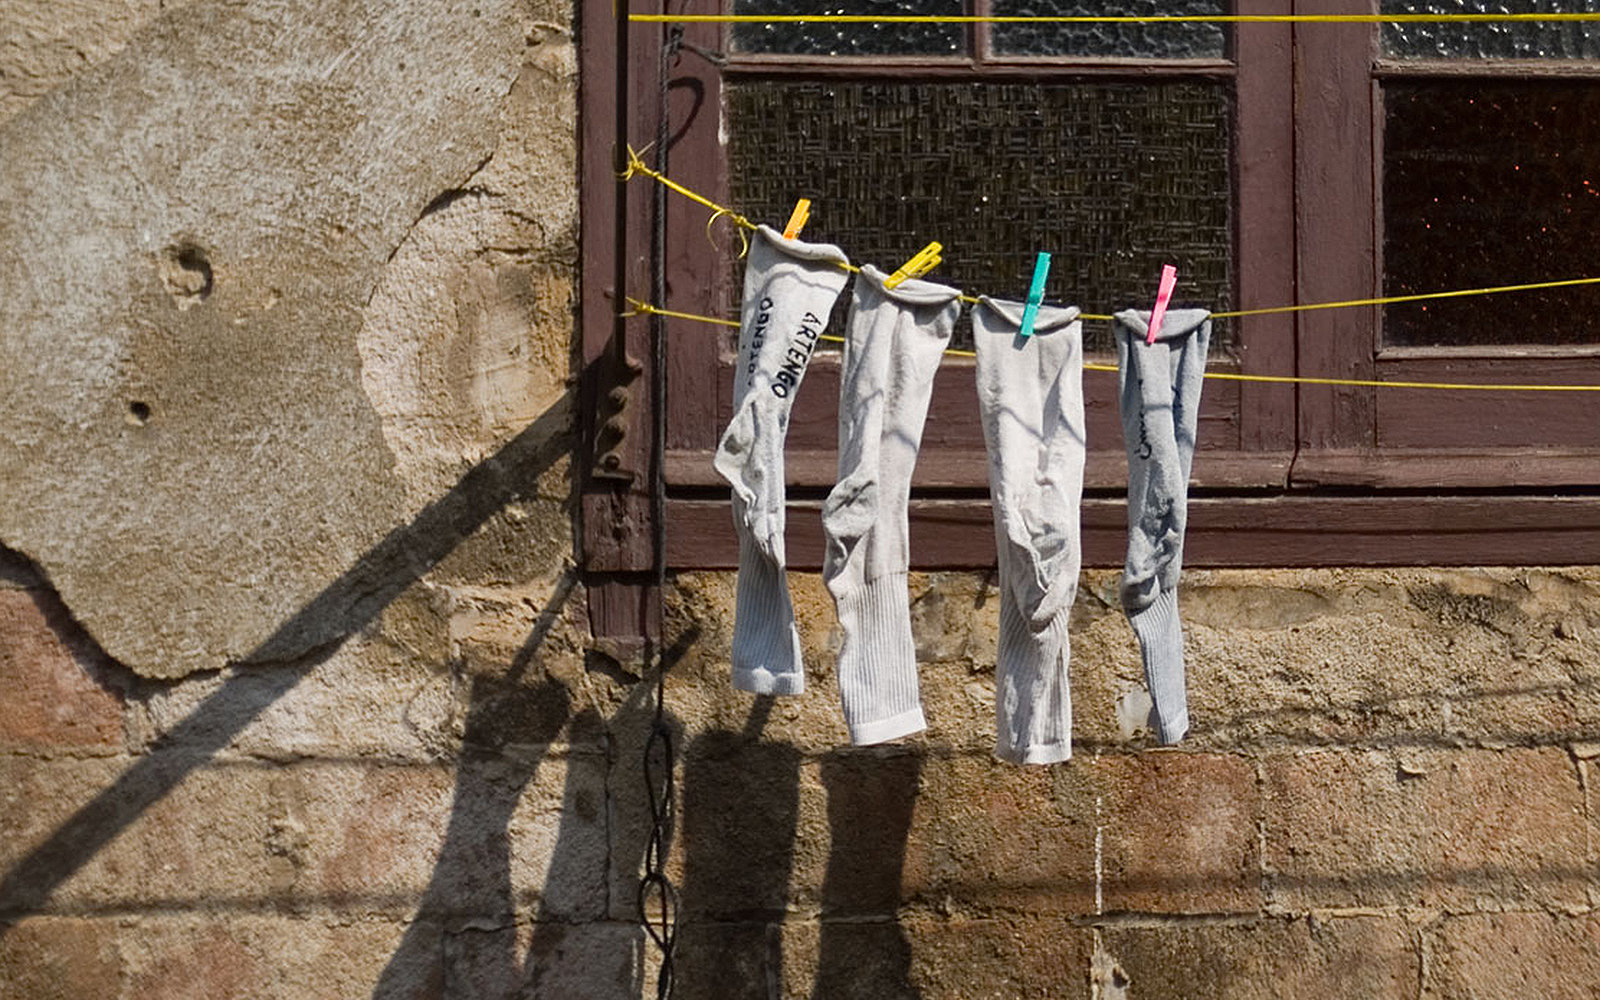 socks hanging to dry